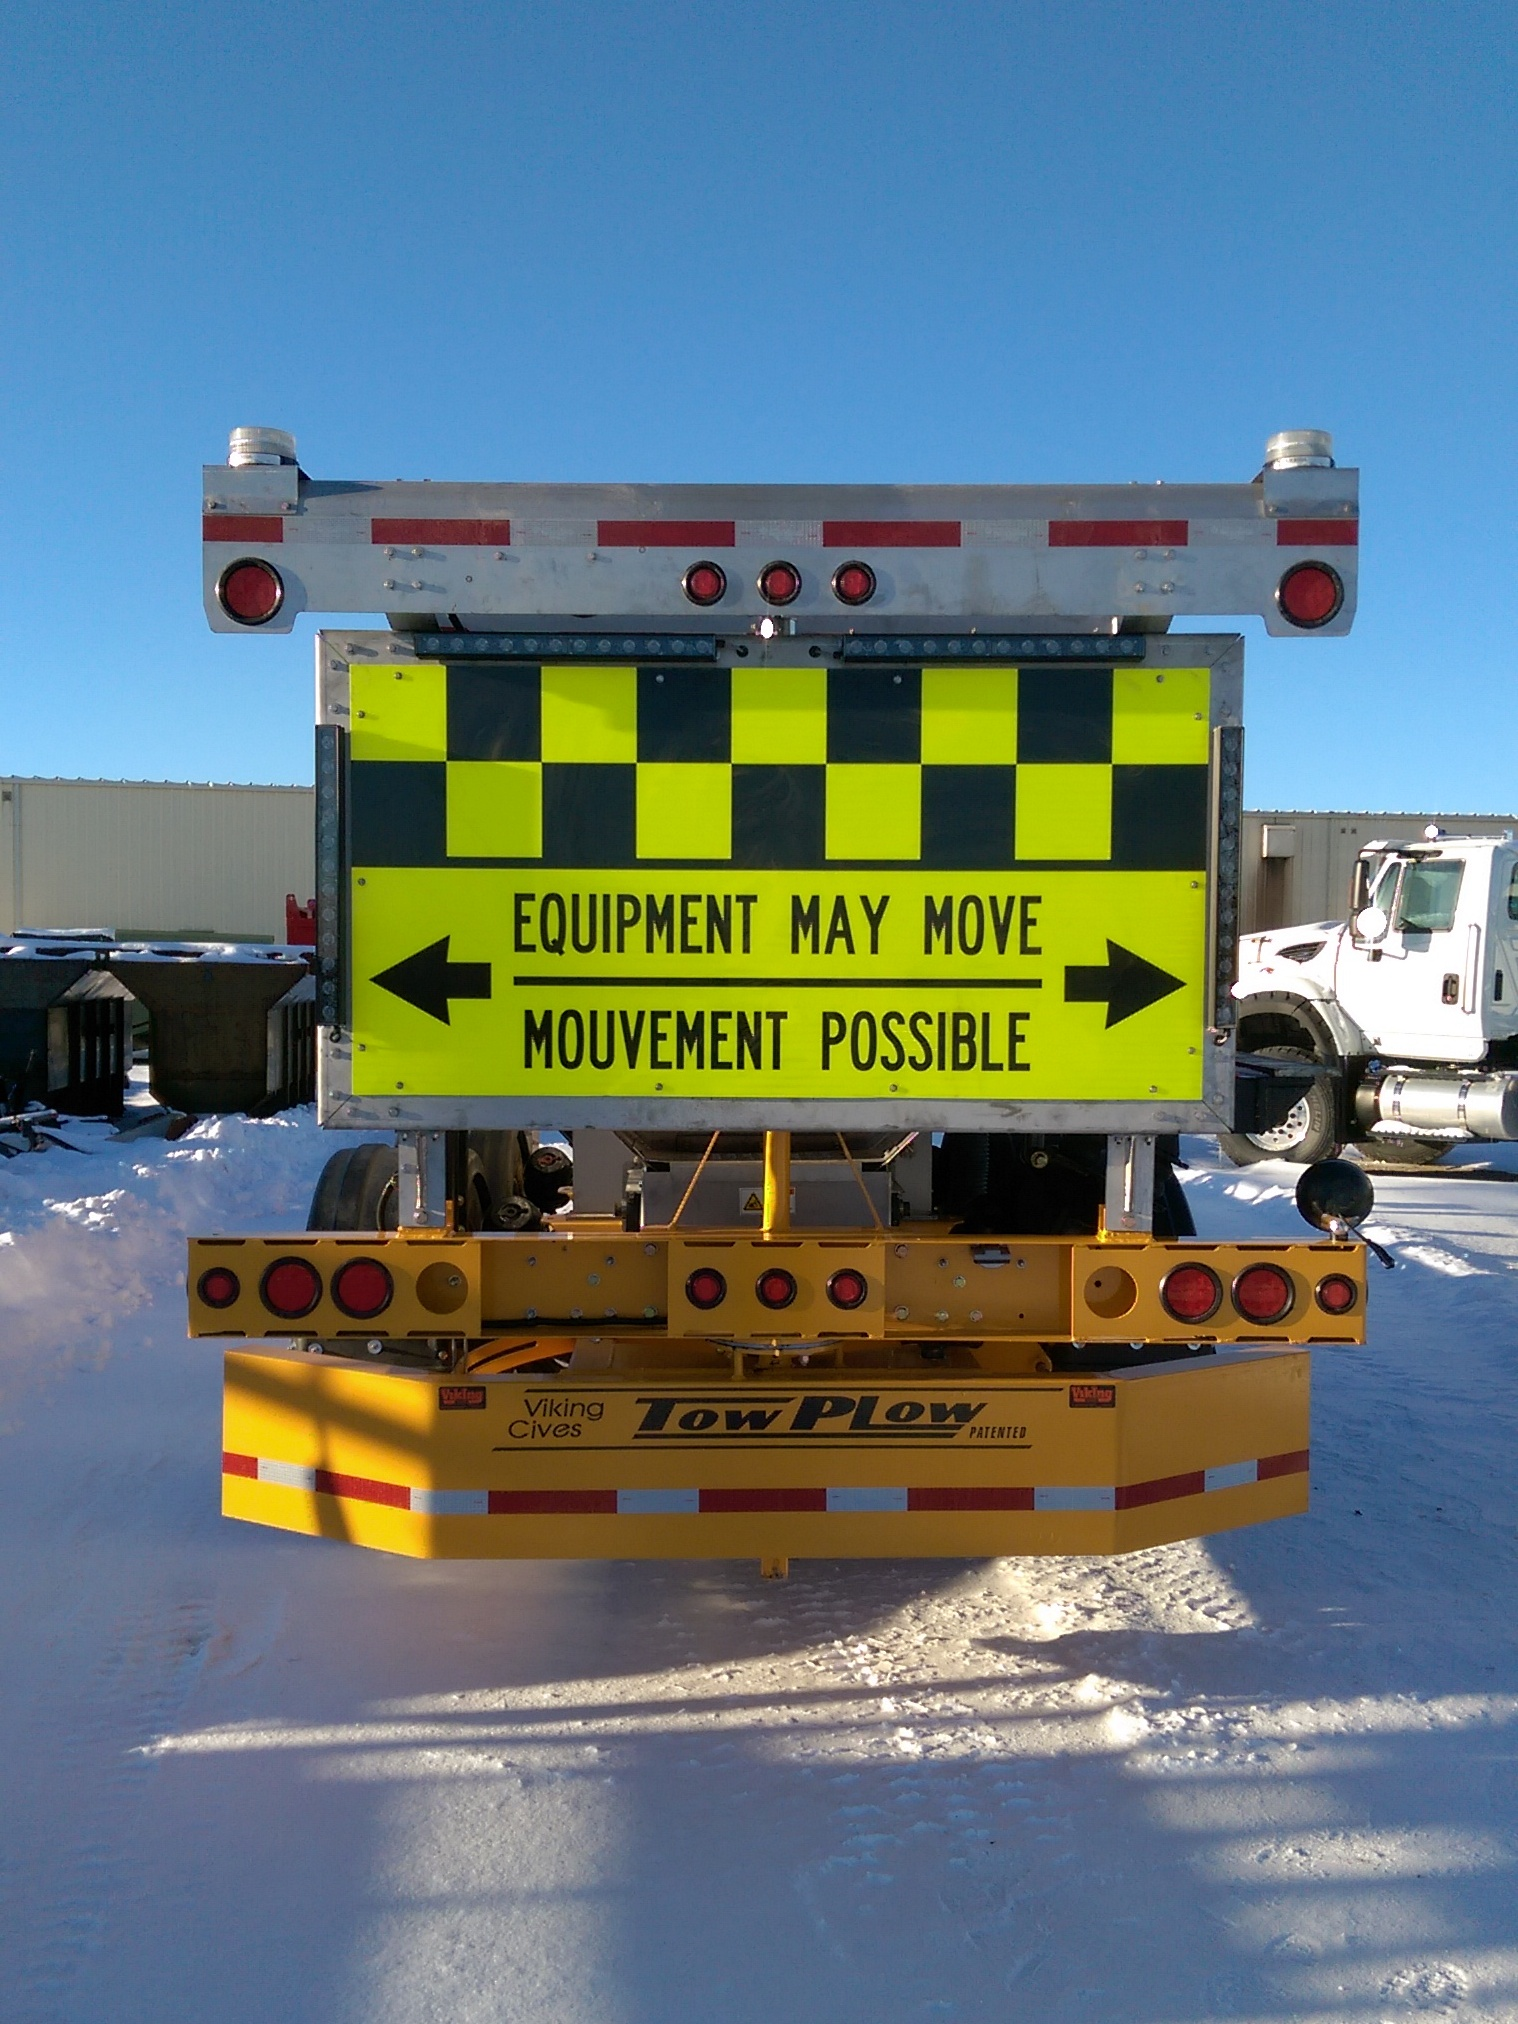 road talk winter vol 22 no 1 winter 2016 figure 3 signage on the back of a tow plow stating that the equipment